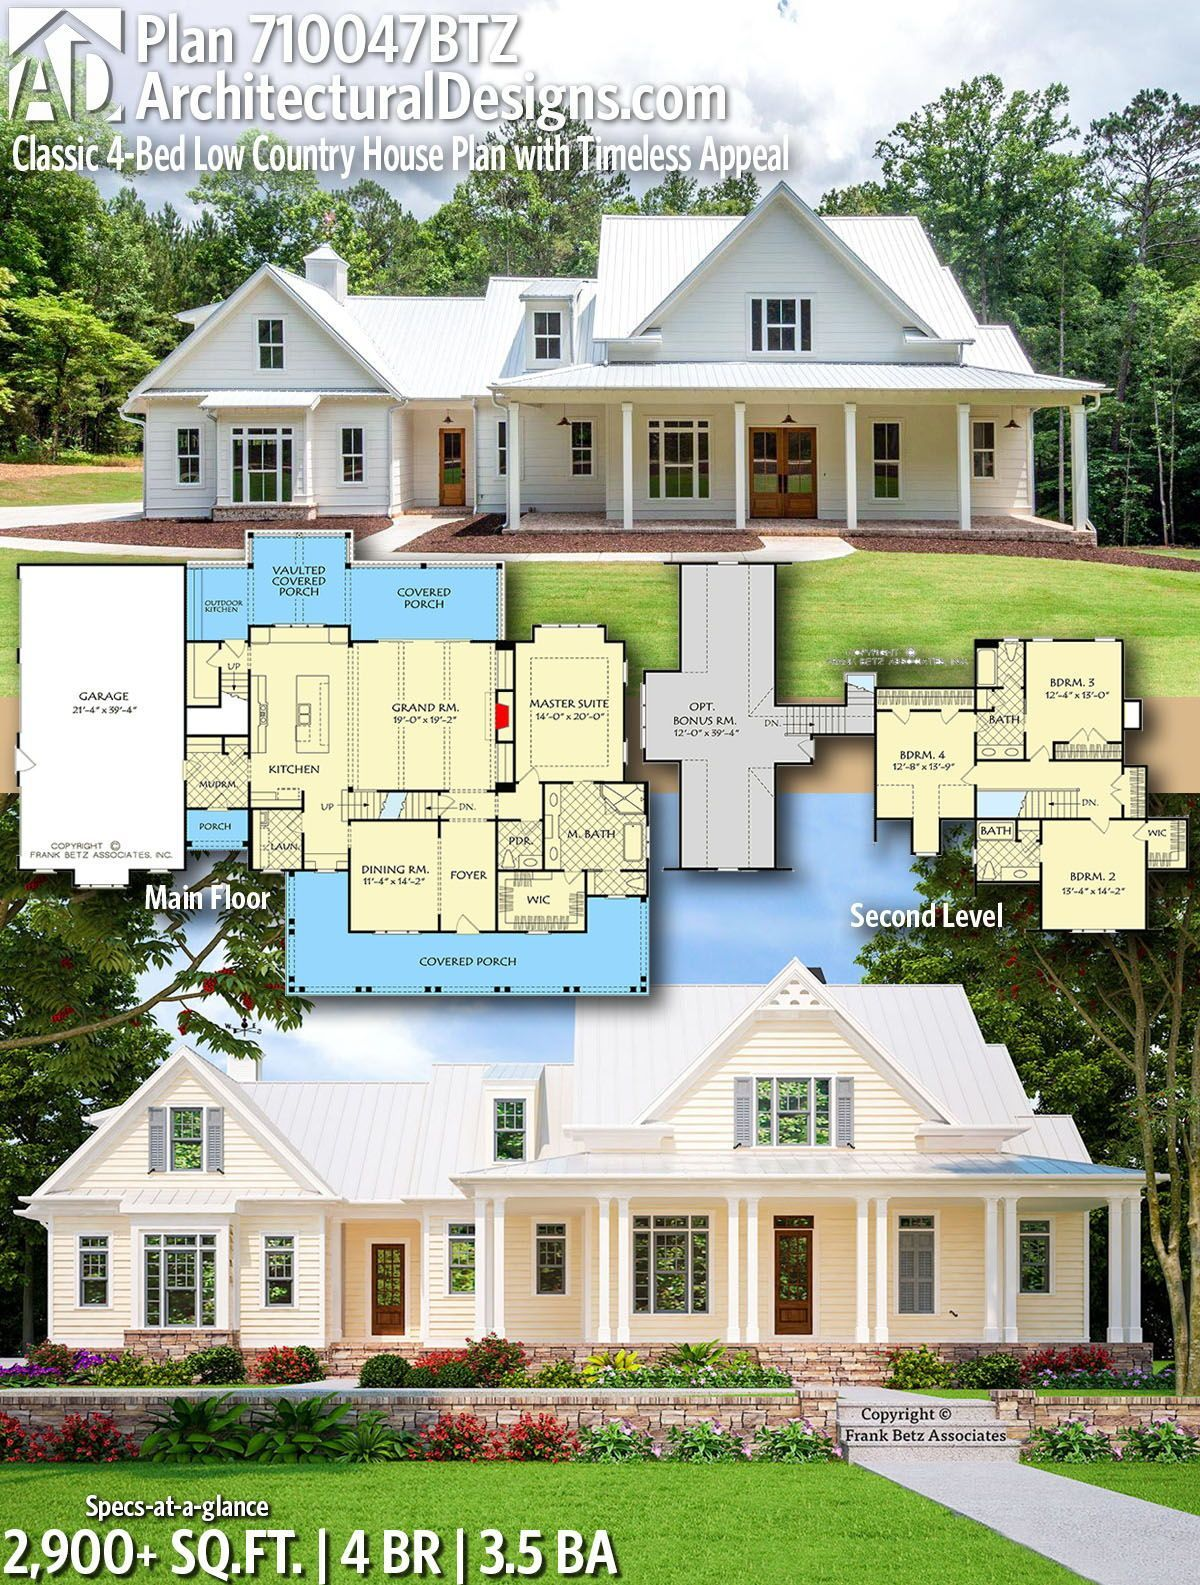 Plan 710047btz Classic 4 Bed Low Country House Plan With Timeless Appeal Architectural In 2020 Farmhouse Style House Plans House Plans Farmhouse Country House Plan